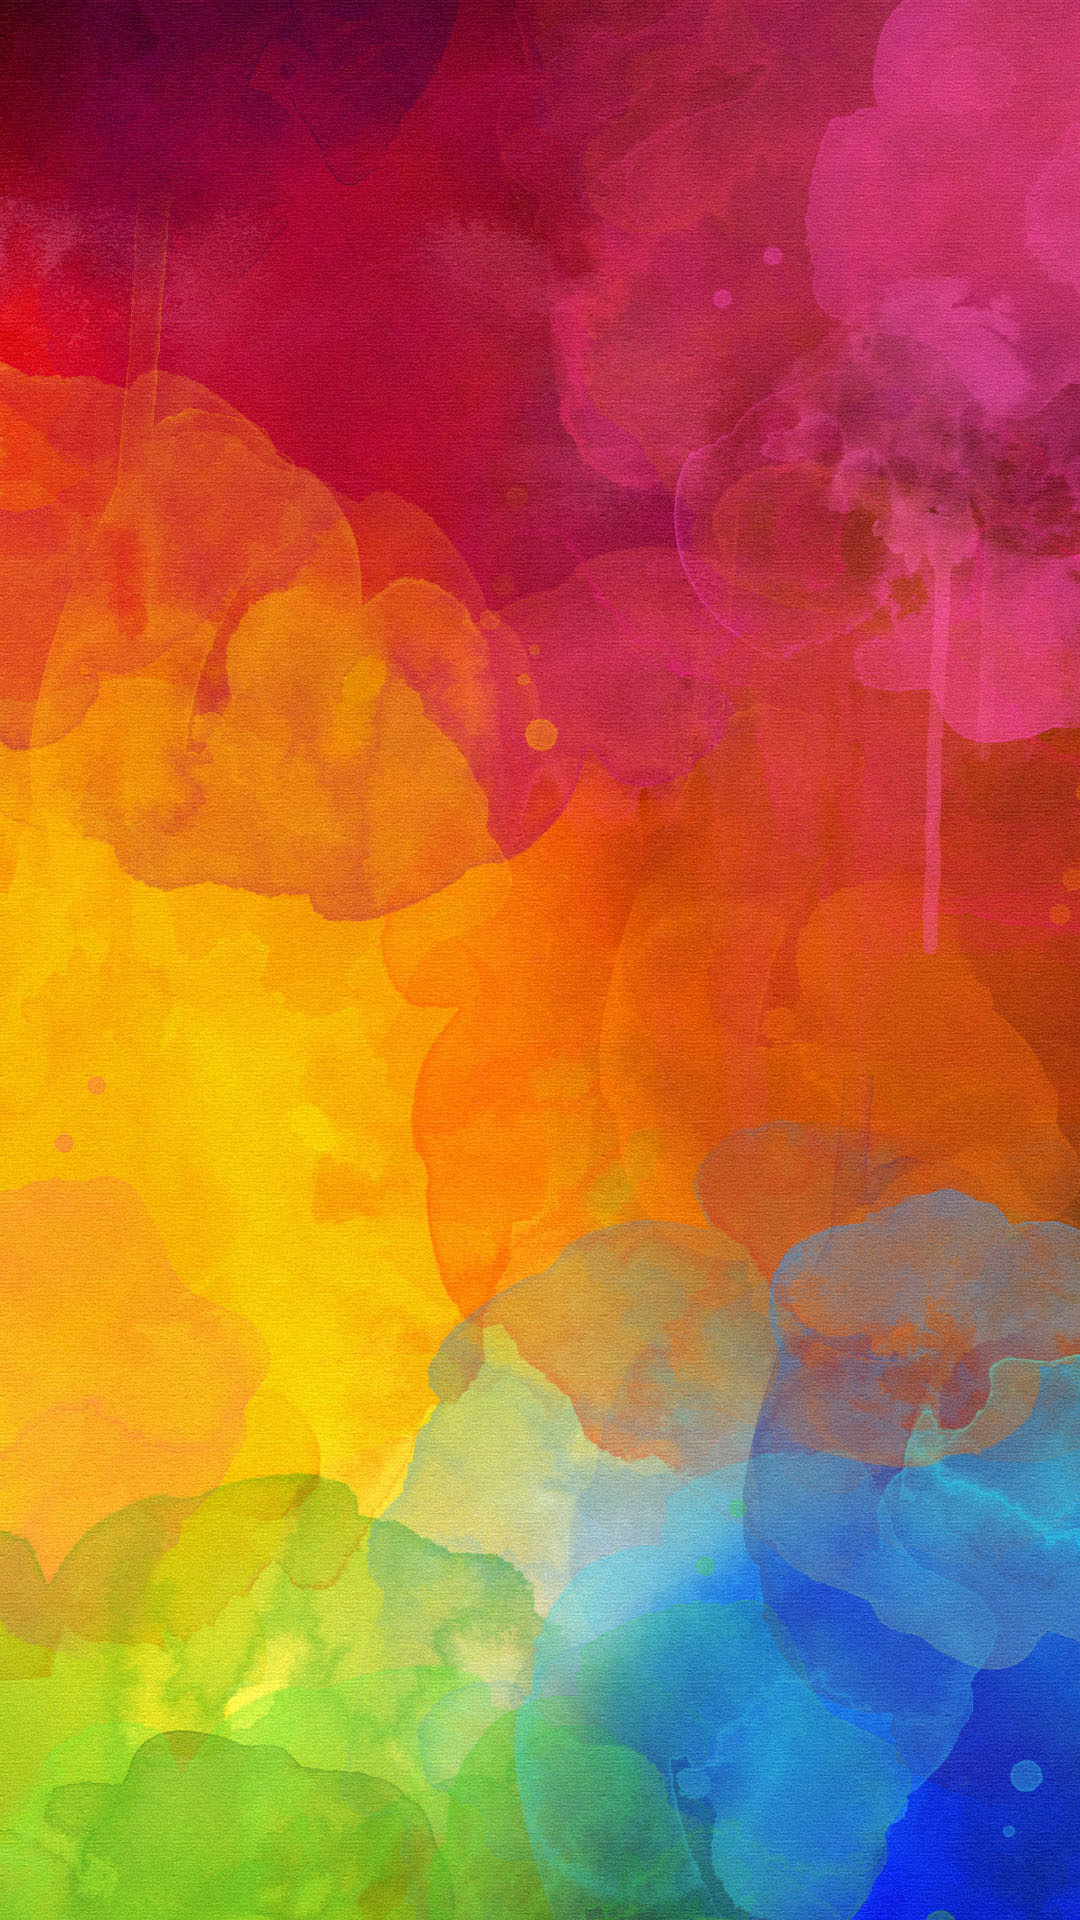 Colourful-Watercolour-Mark-Color-of-rainbow-in-abstract-wallpaper-wp3404058